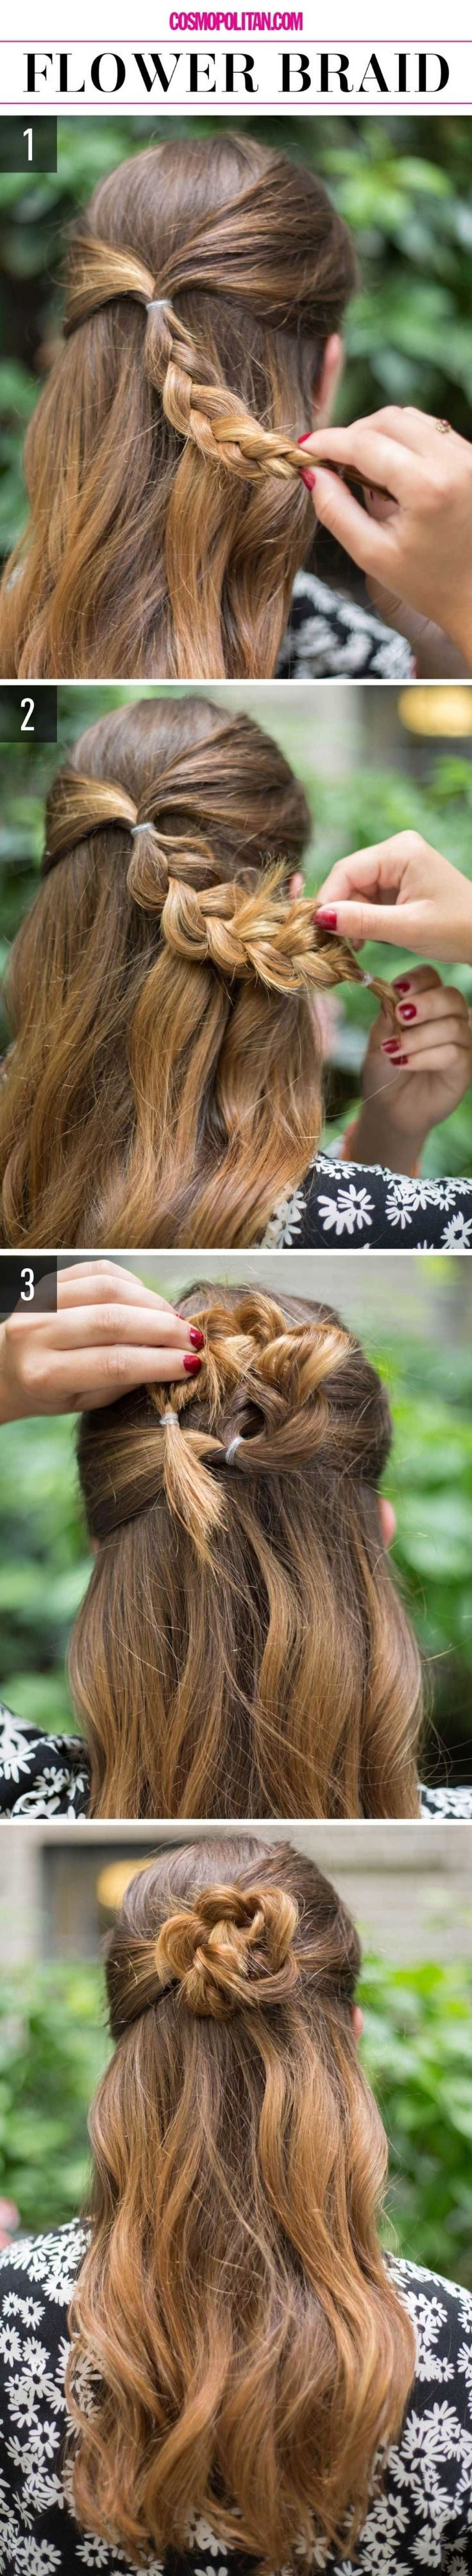 Phenomenal 25 Best Ideas About Super Cute Hairstyles On Pinterest Hairstyles For Women Draintrainus